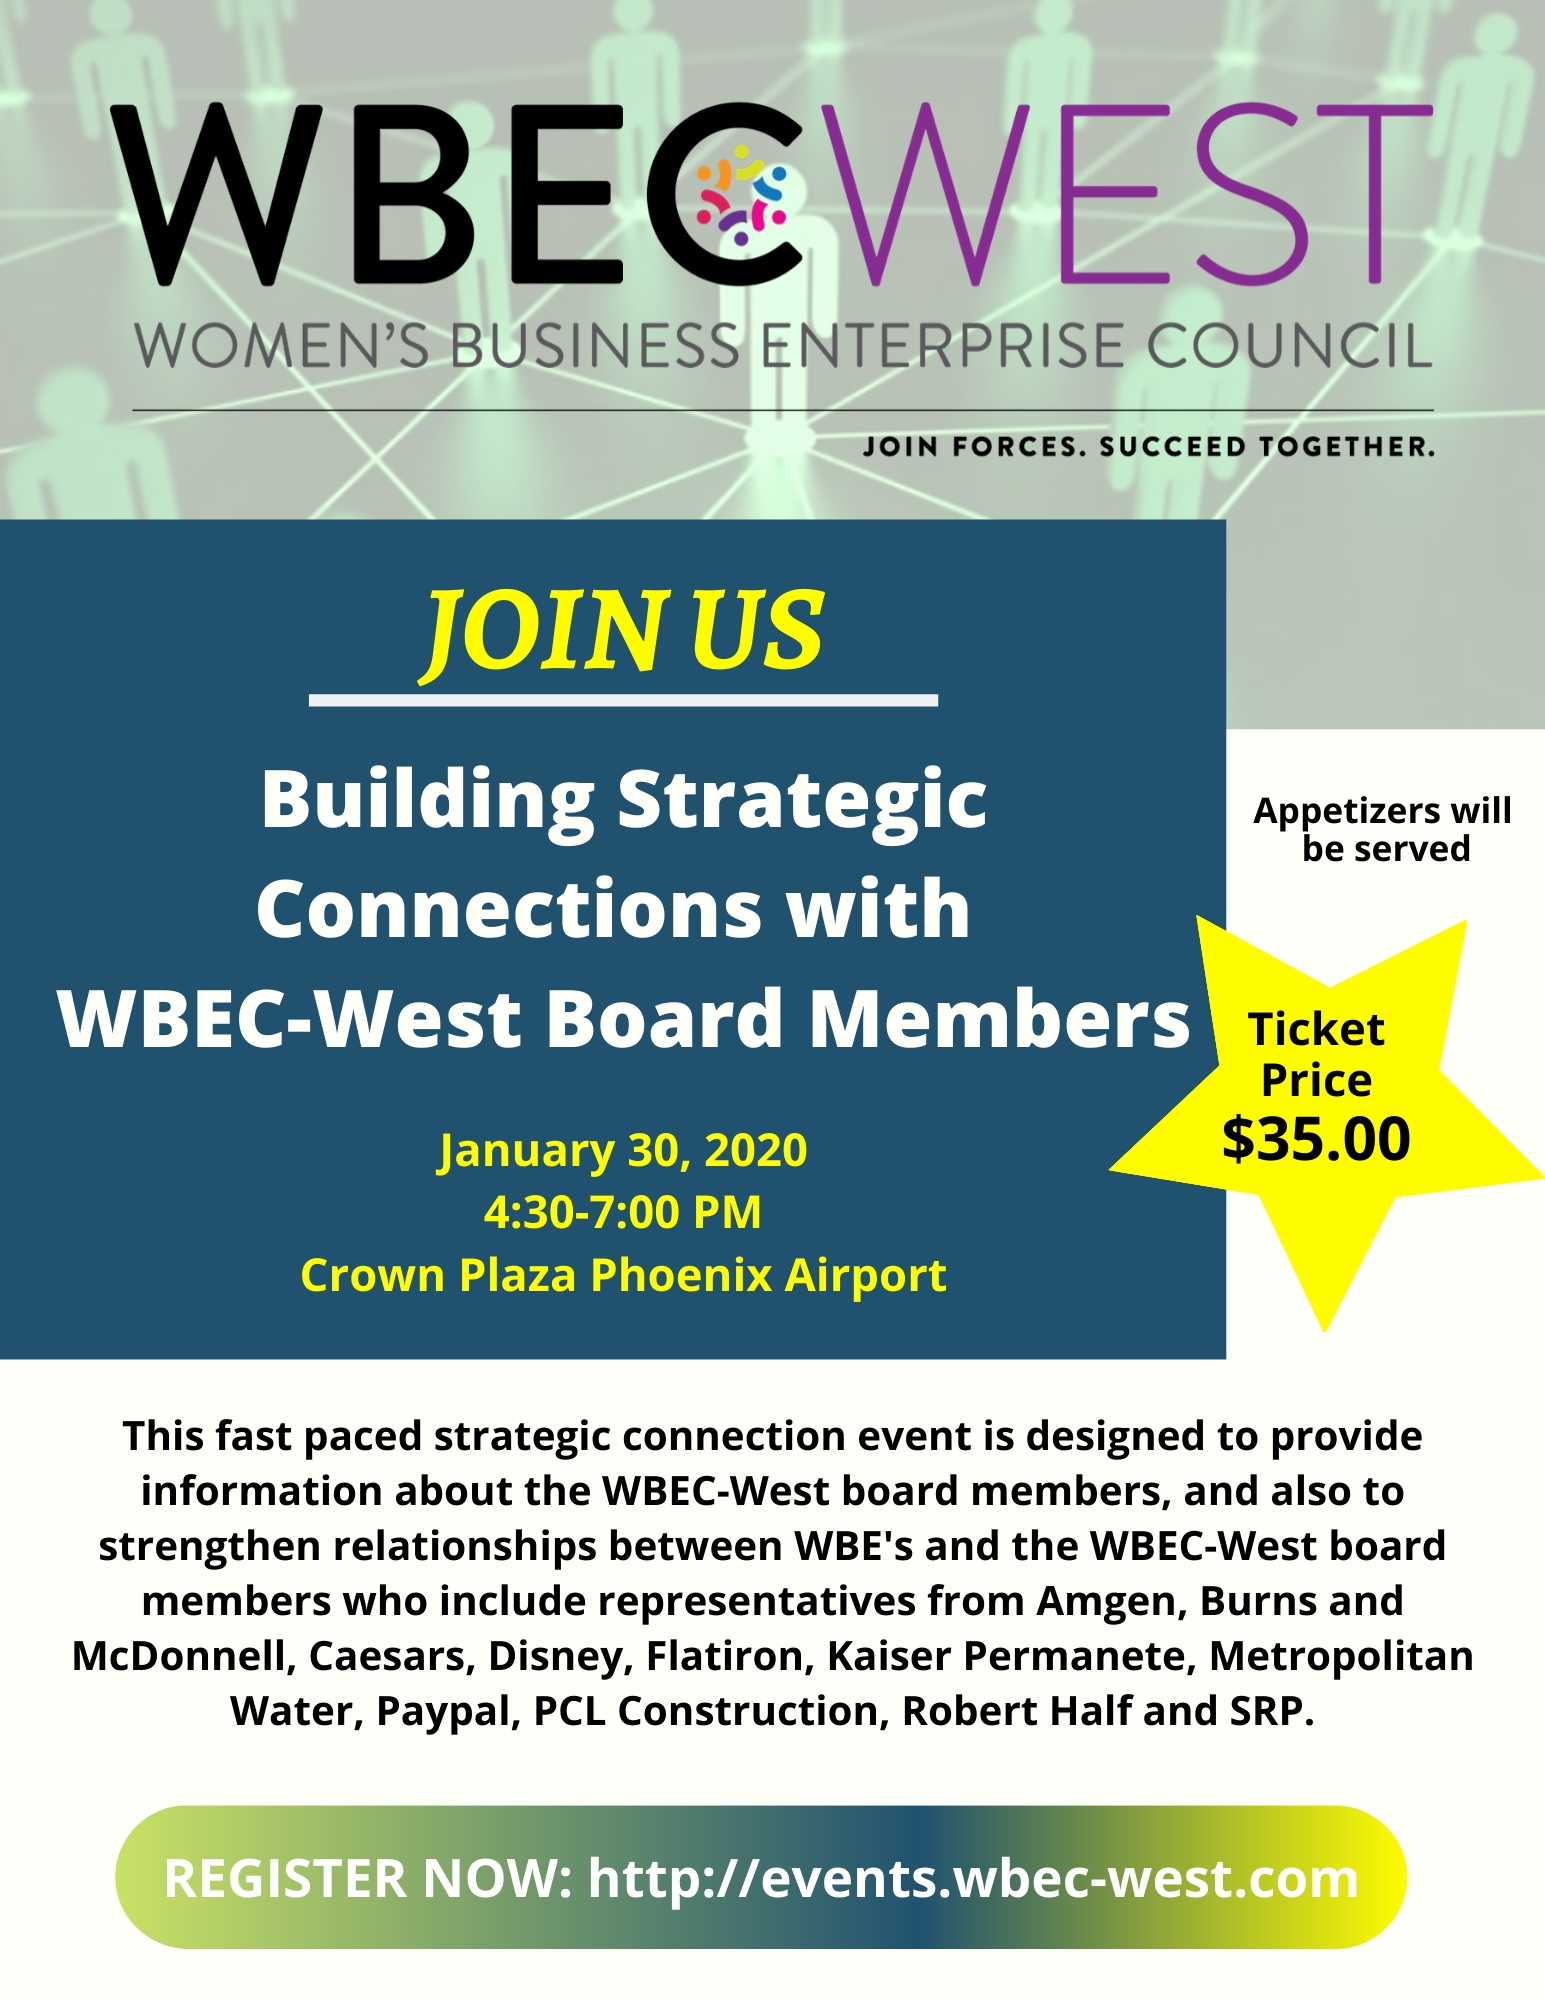 Building Strategic Connections with WBEC-West Board Members